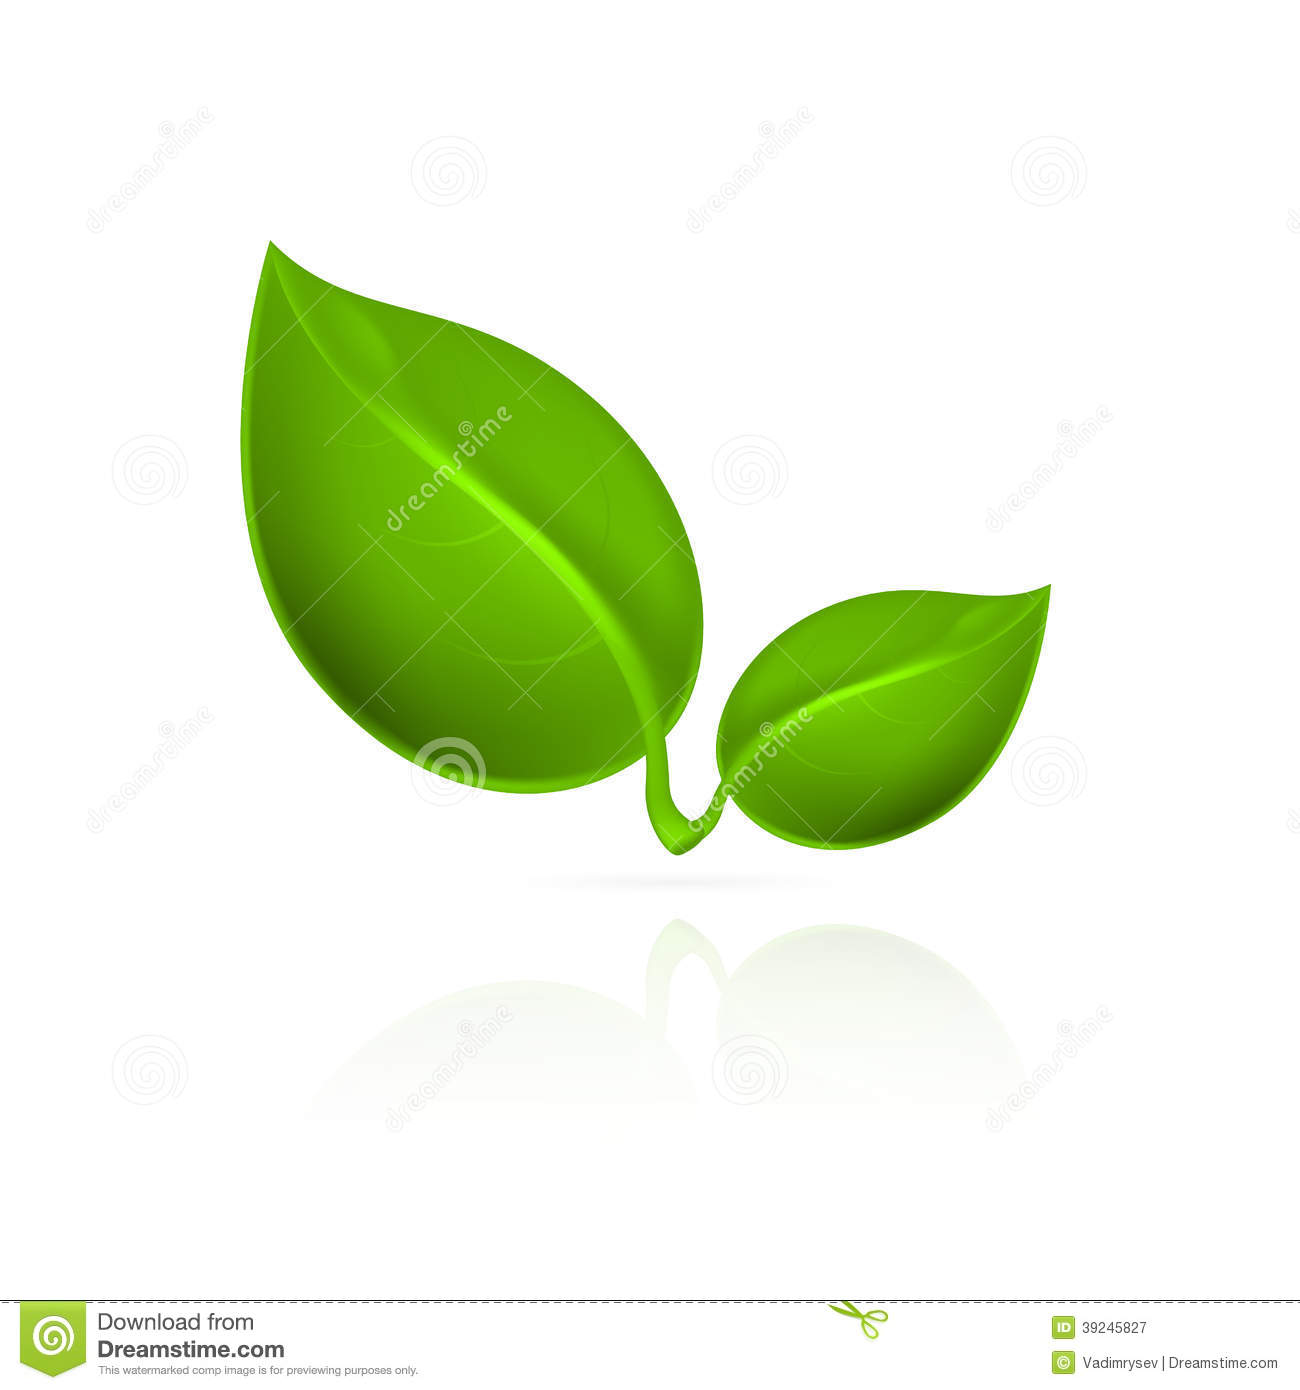 Leaf Icon Stock Photos, Royalty-Free Images & Vectors - Shutterstock